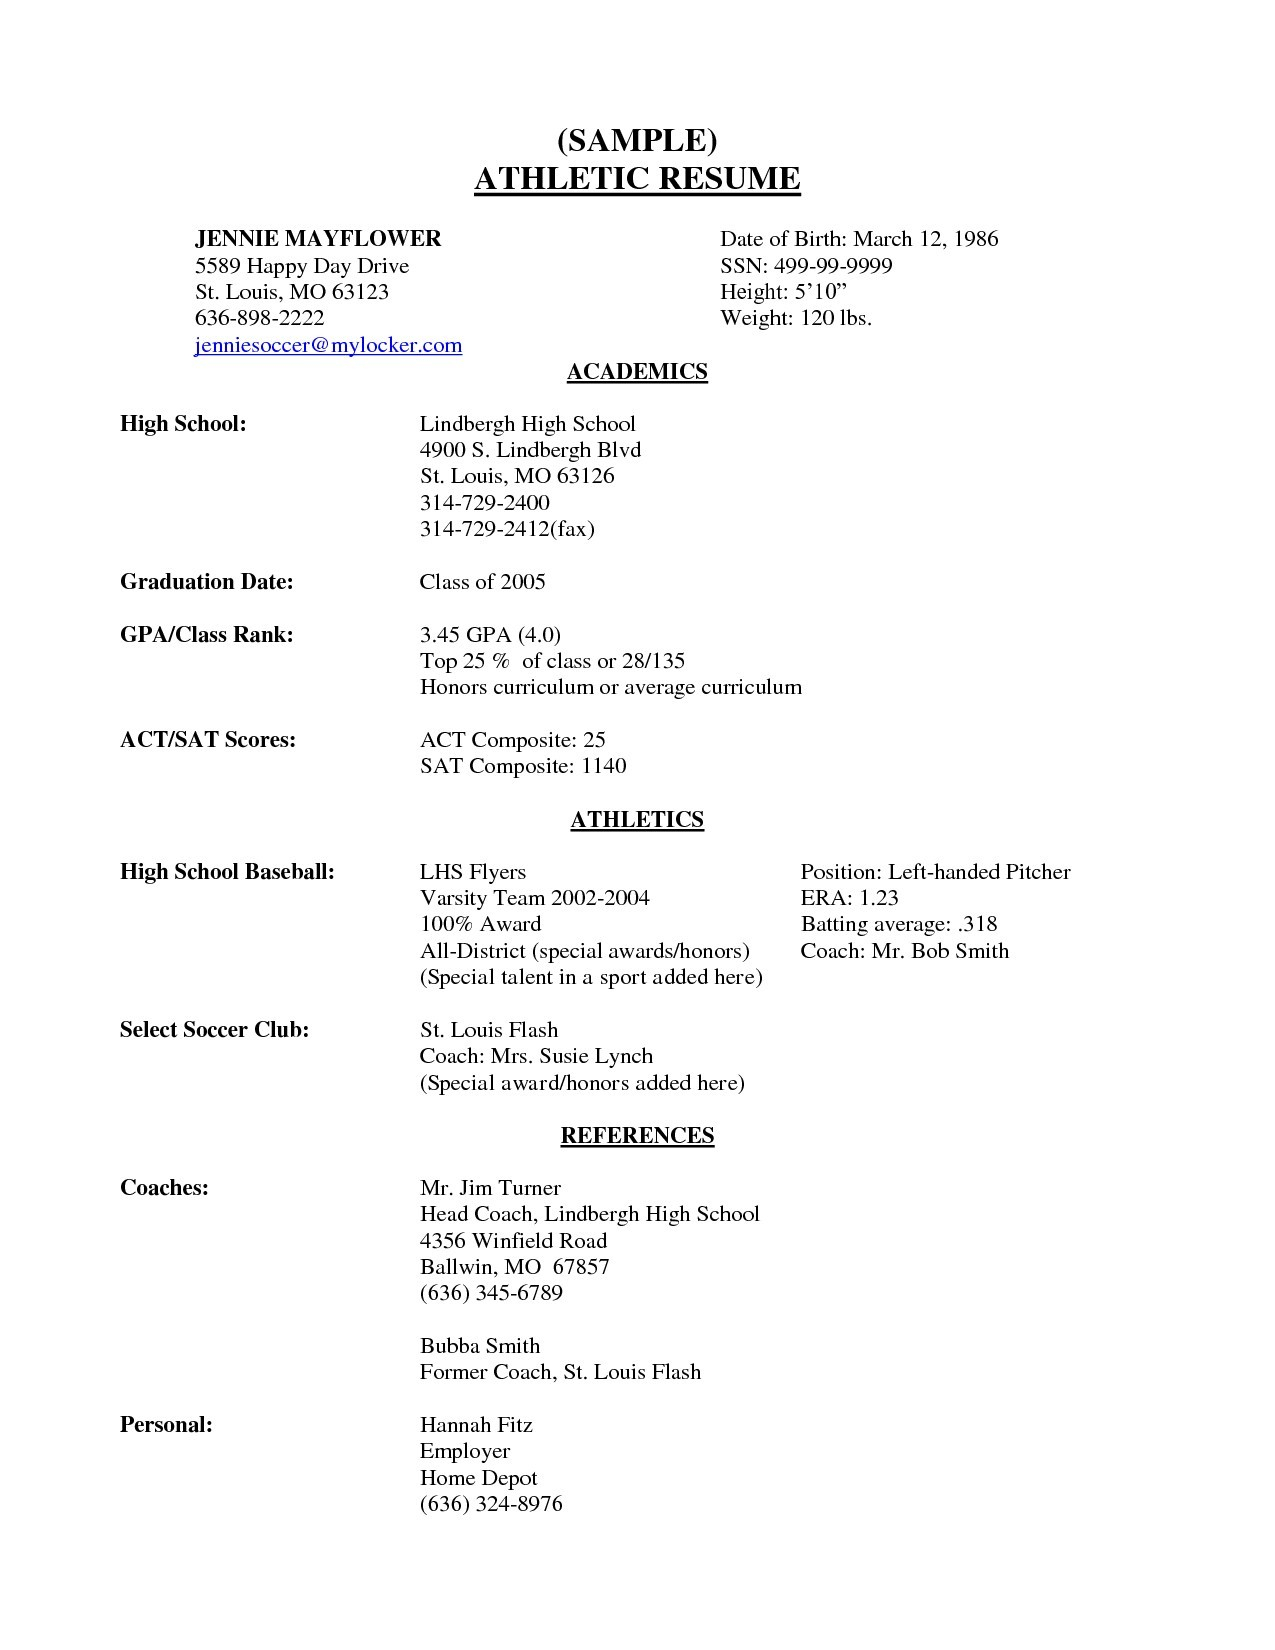 Student athlete Resume Example - Sample College Resume High School Senior New High School Student